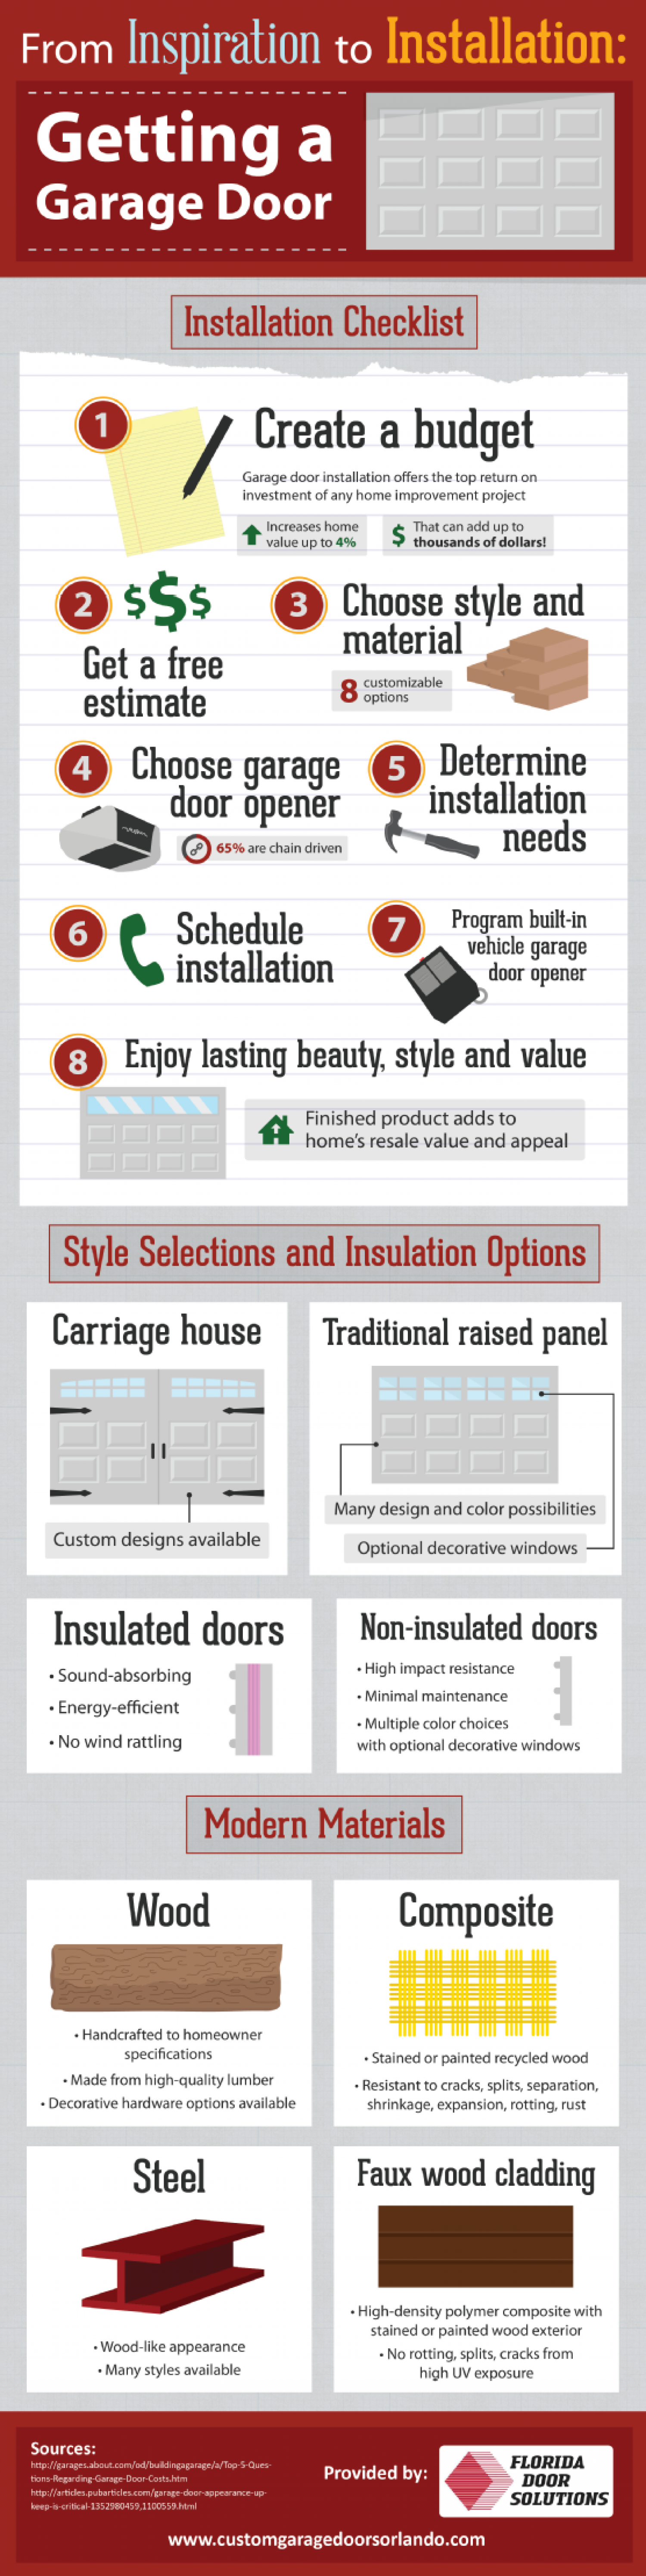 From Inspiration to Installation: Getting a Garage Door  Infographic